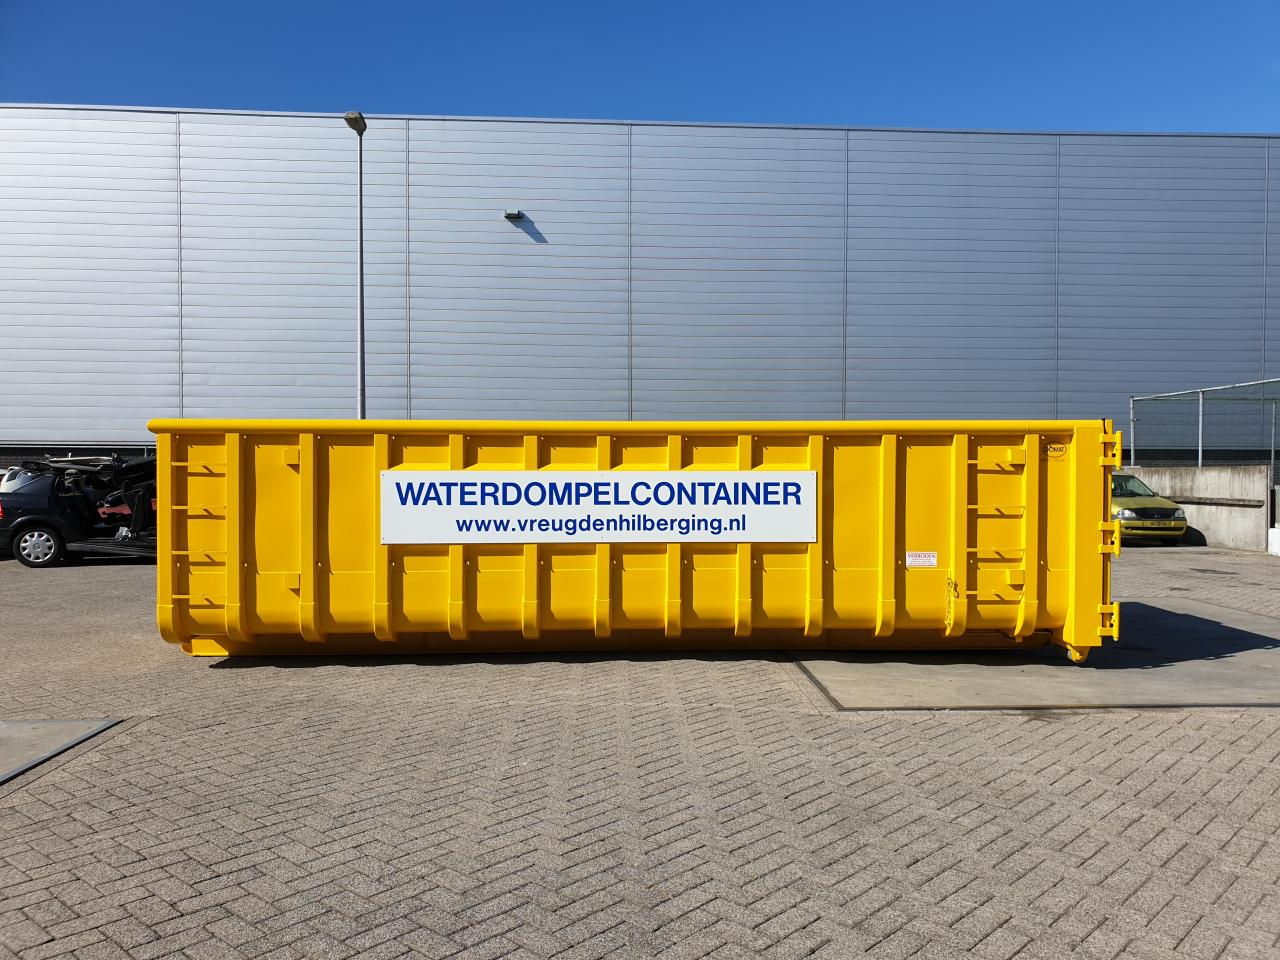 Waterdompelcontainer